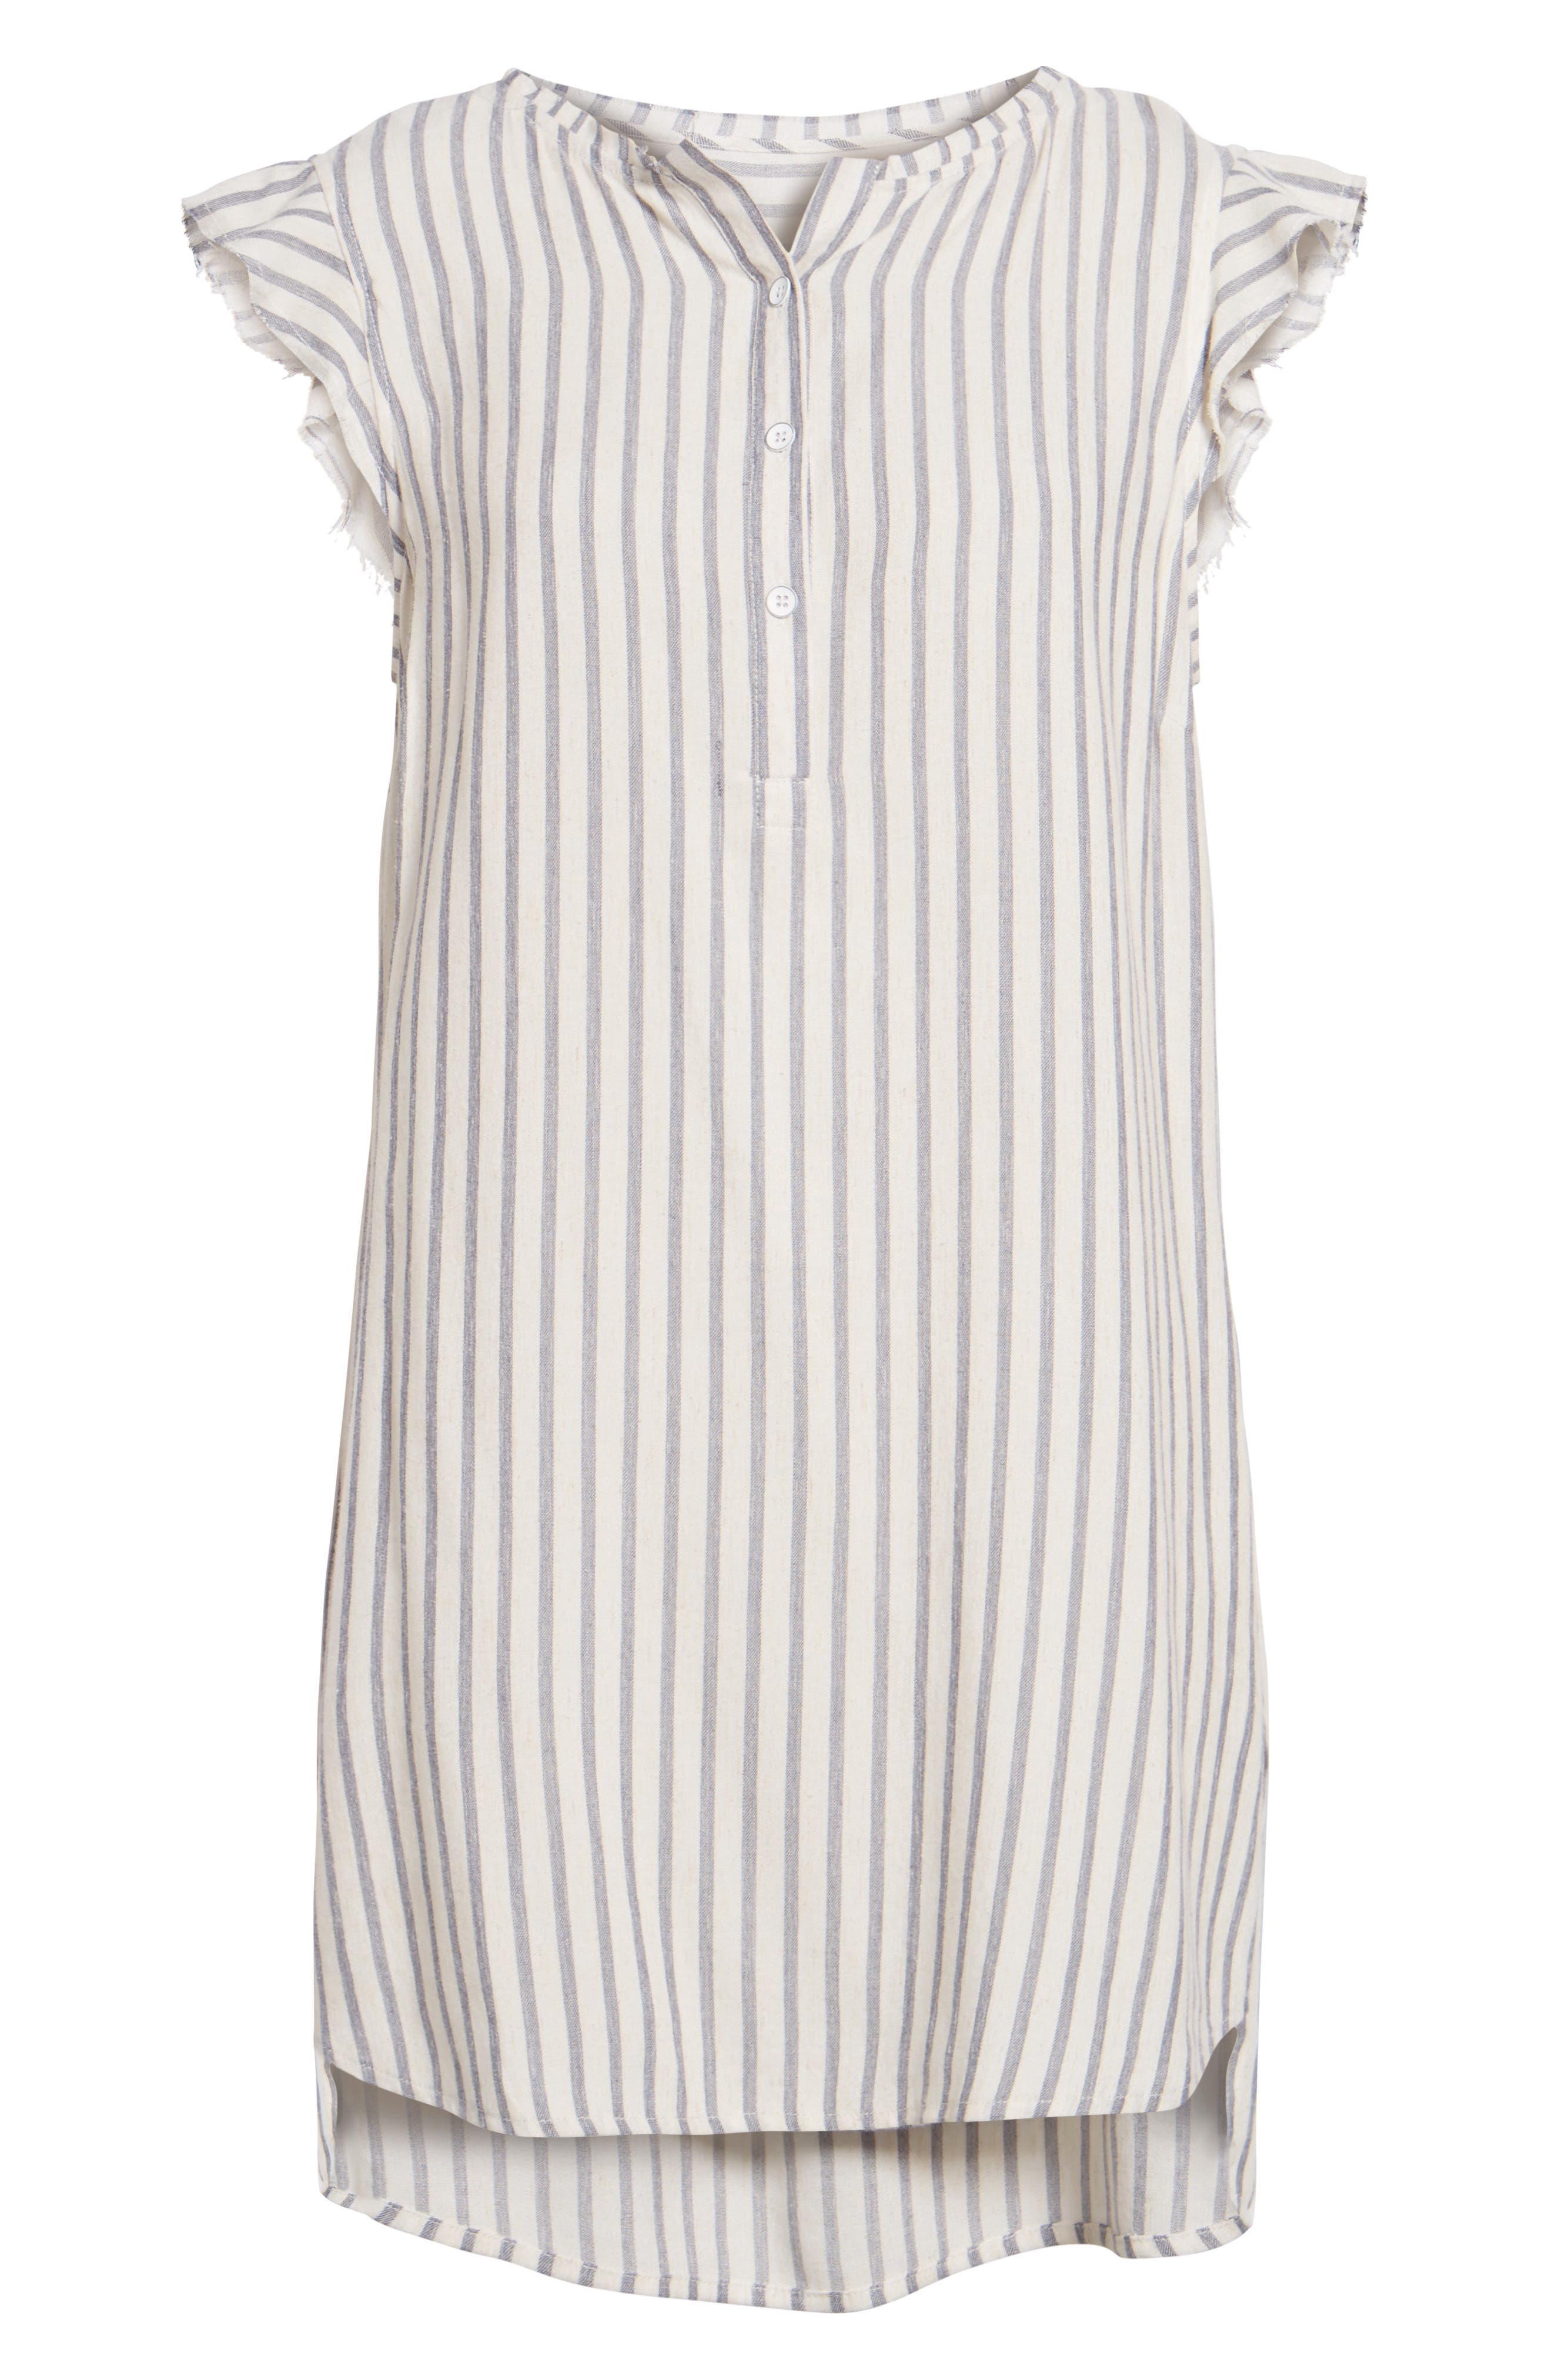 Stripe Ruffle Sleeve Shift Dress,                             Alternate thumbnail 6, color,                             Off White/ Blue